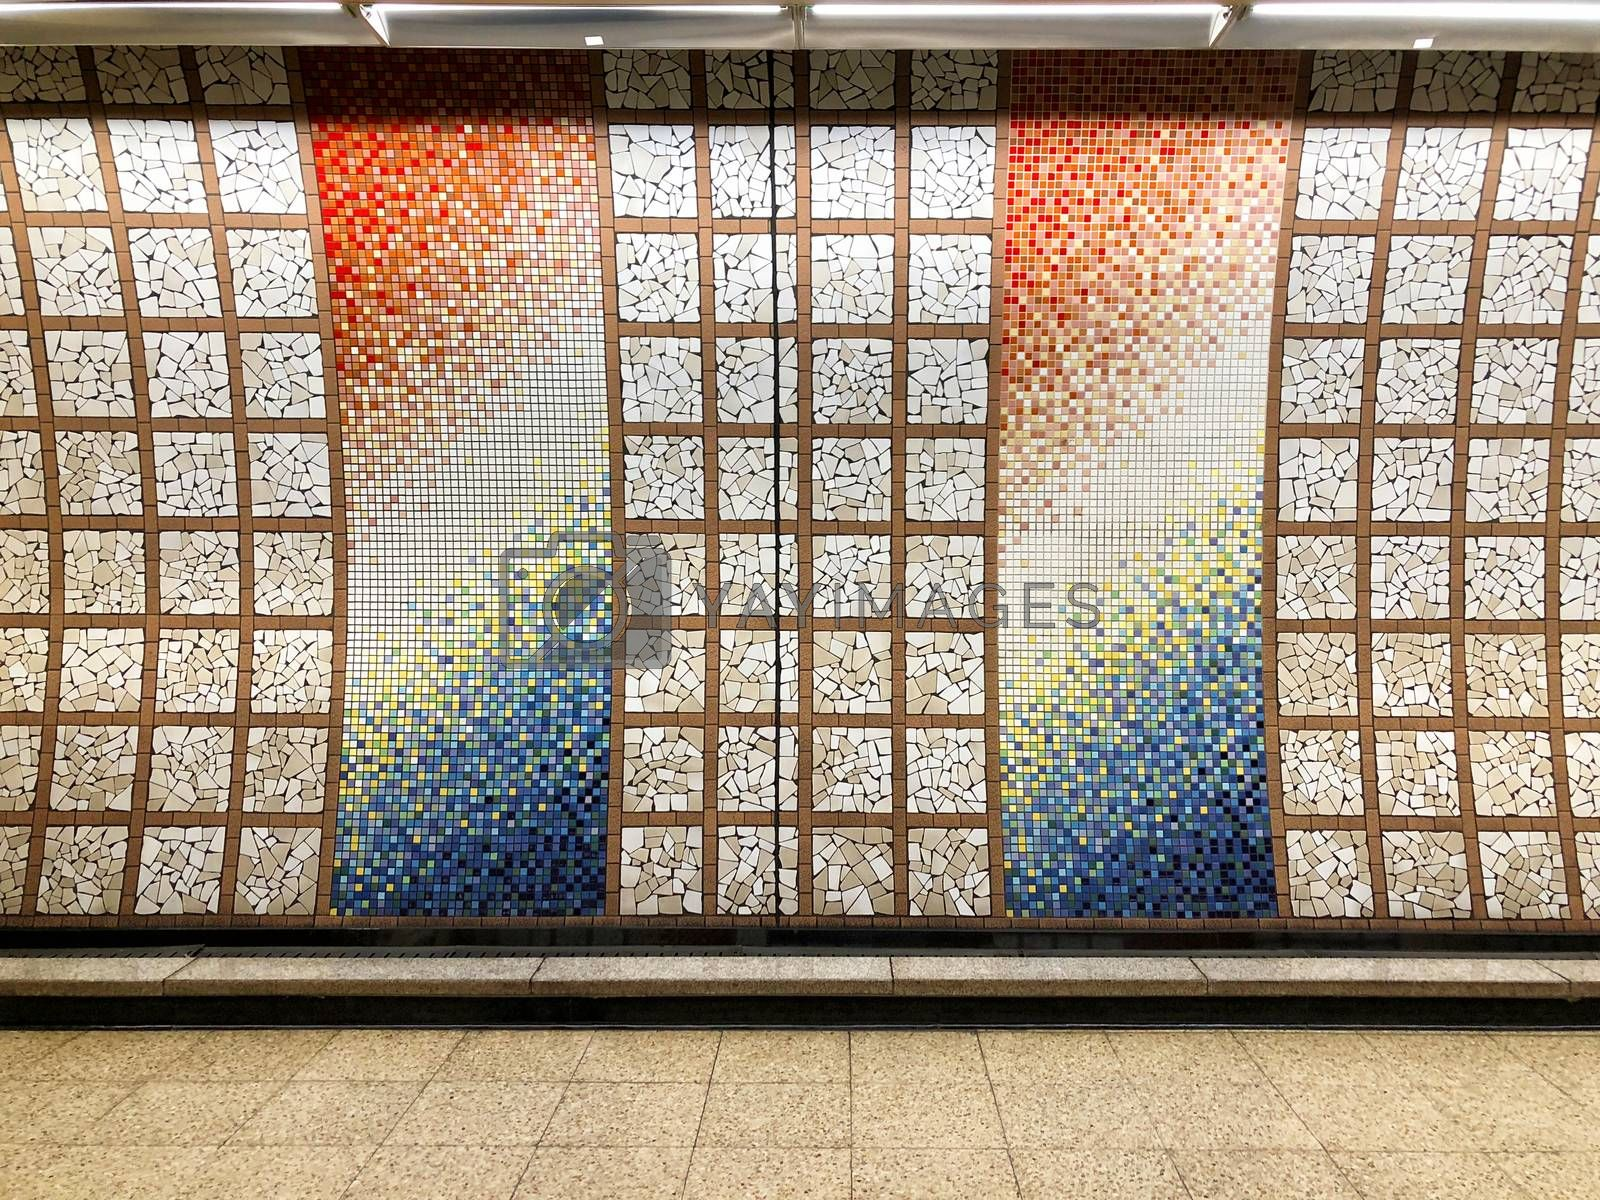 Tile wall in the subway at Seoul Korea